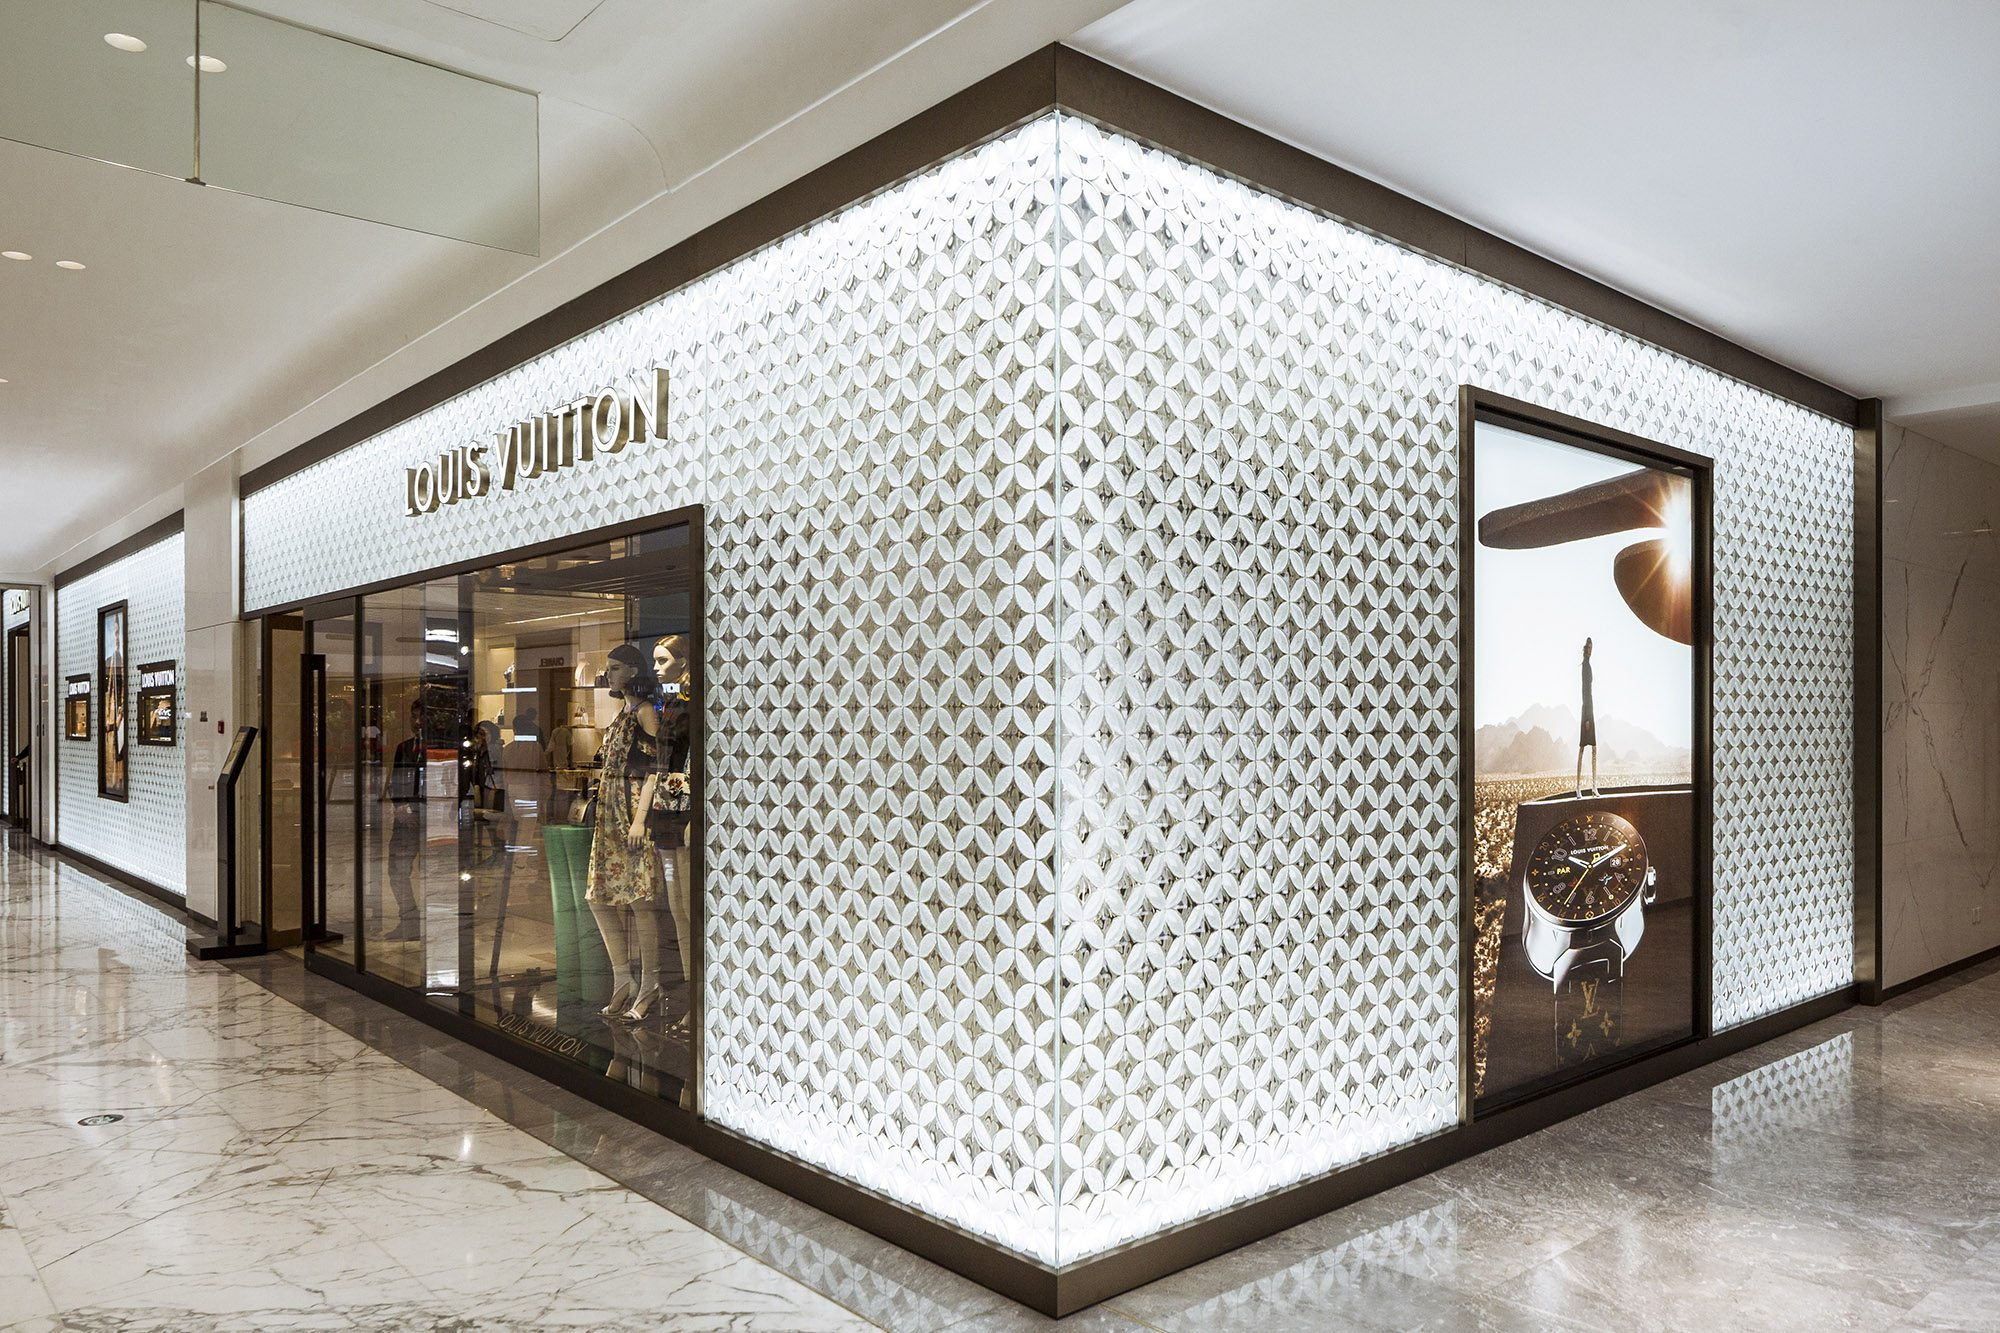 Louis Vuitton Beijing China Architectural Glass Partitions